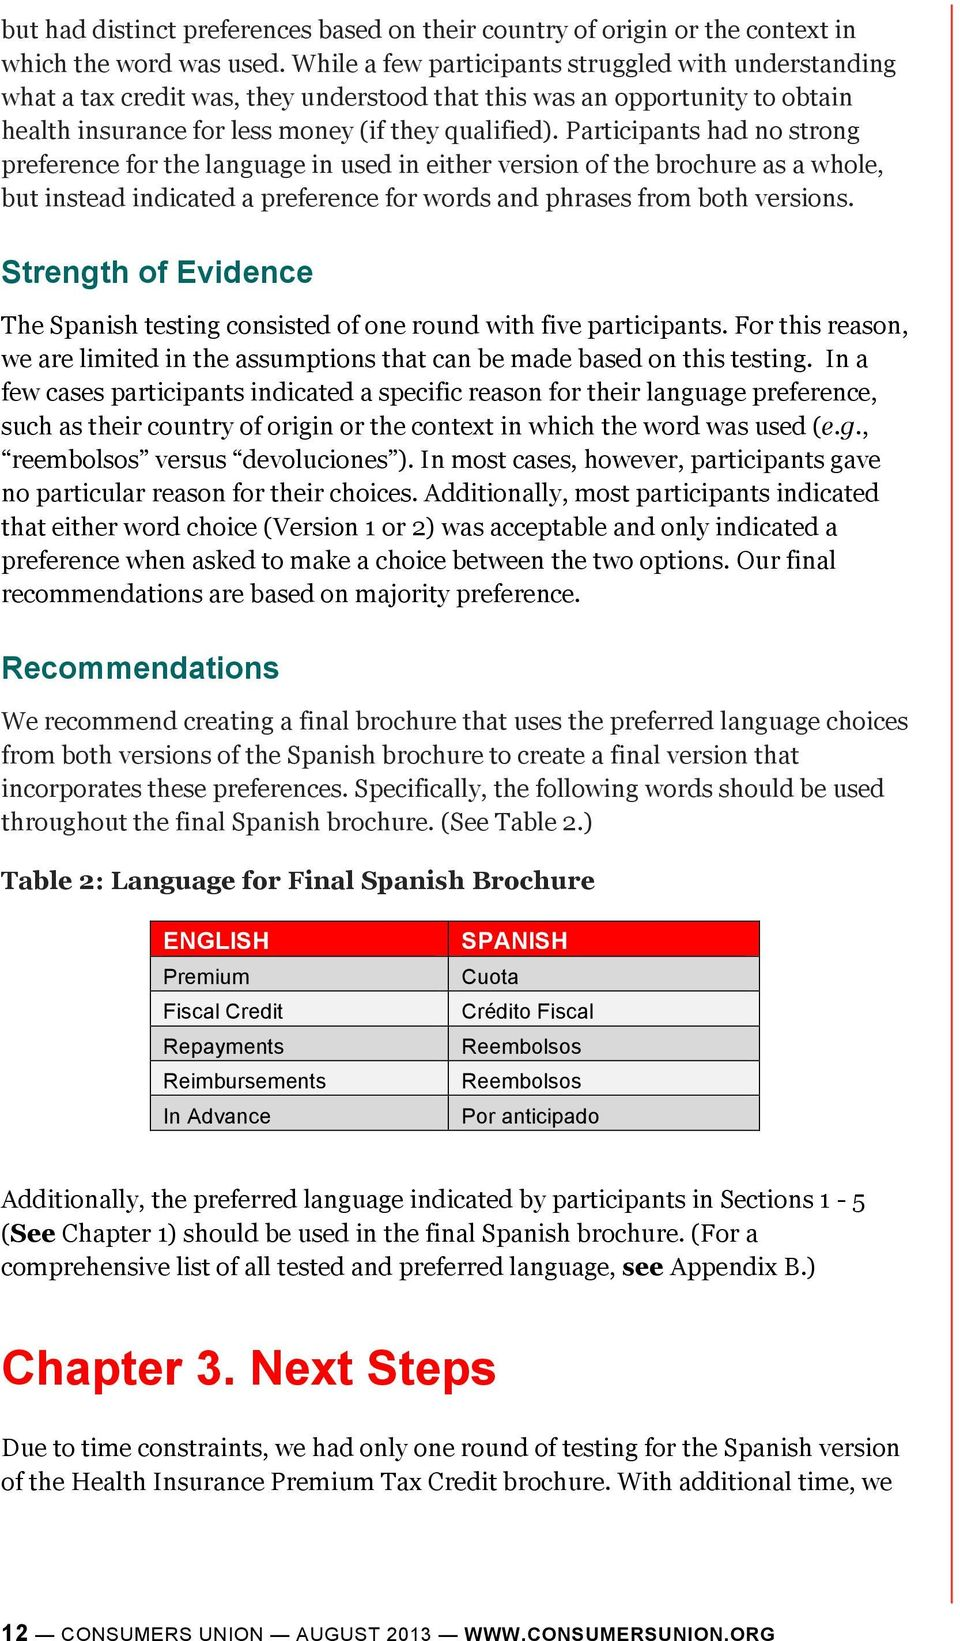 Participants had no strong preference for the language in used in either version of the brochure as a whole, but instead indicated a preference for words and phrases from both versions.